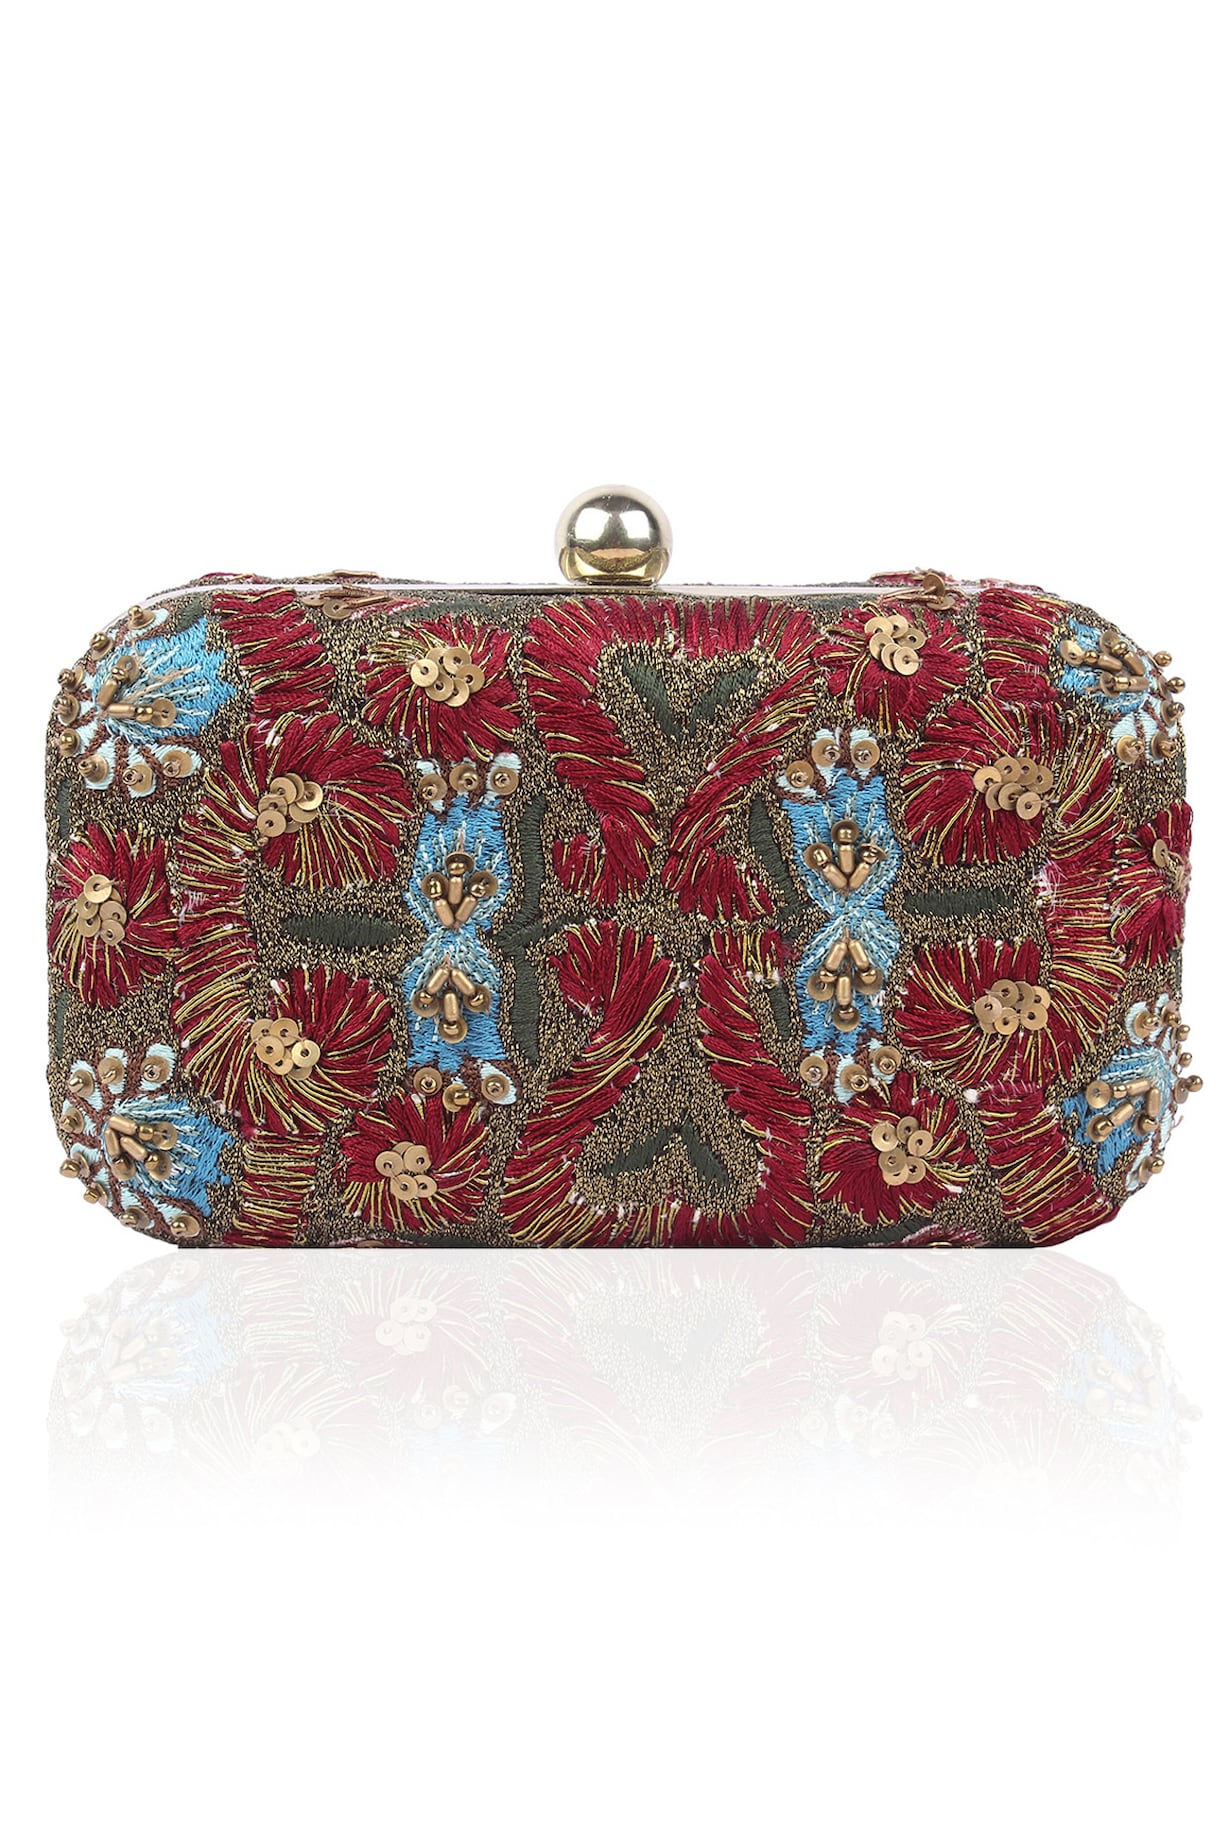 Samant Chauhan Accessories Clutch